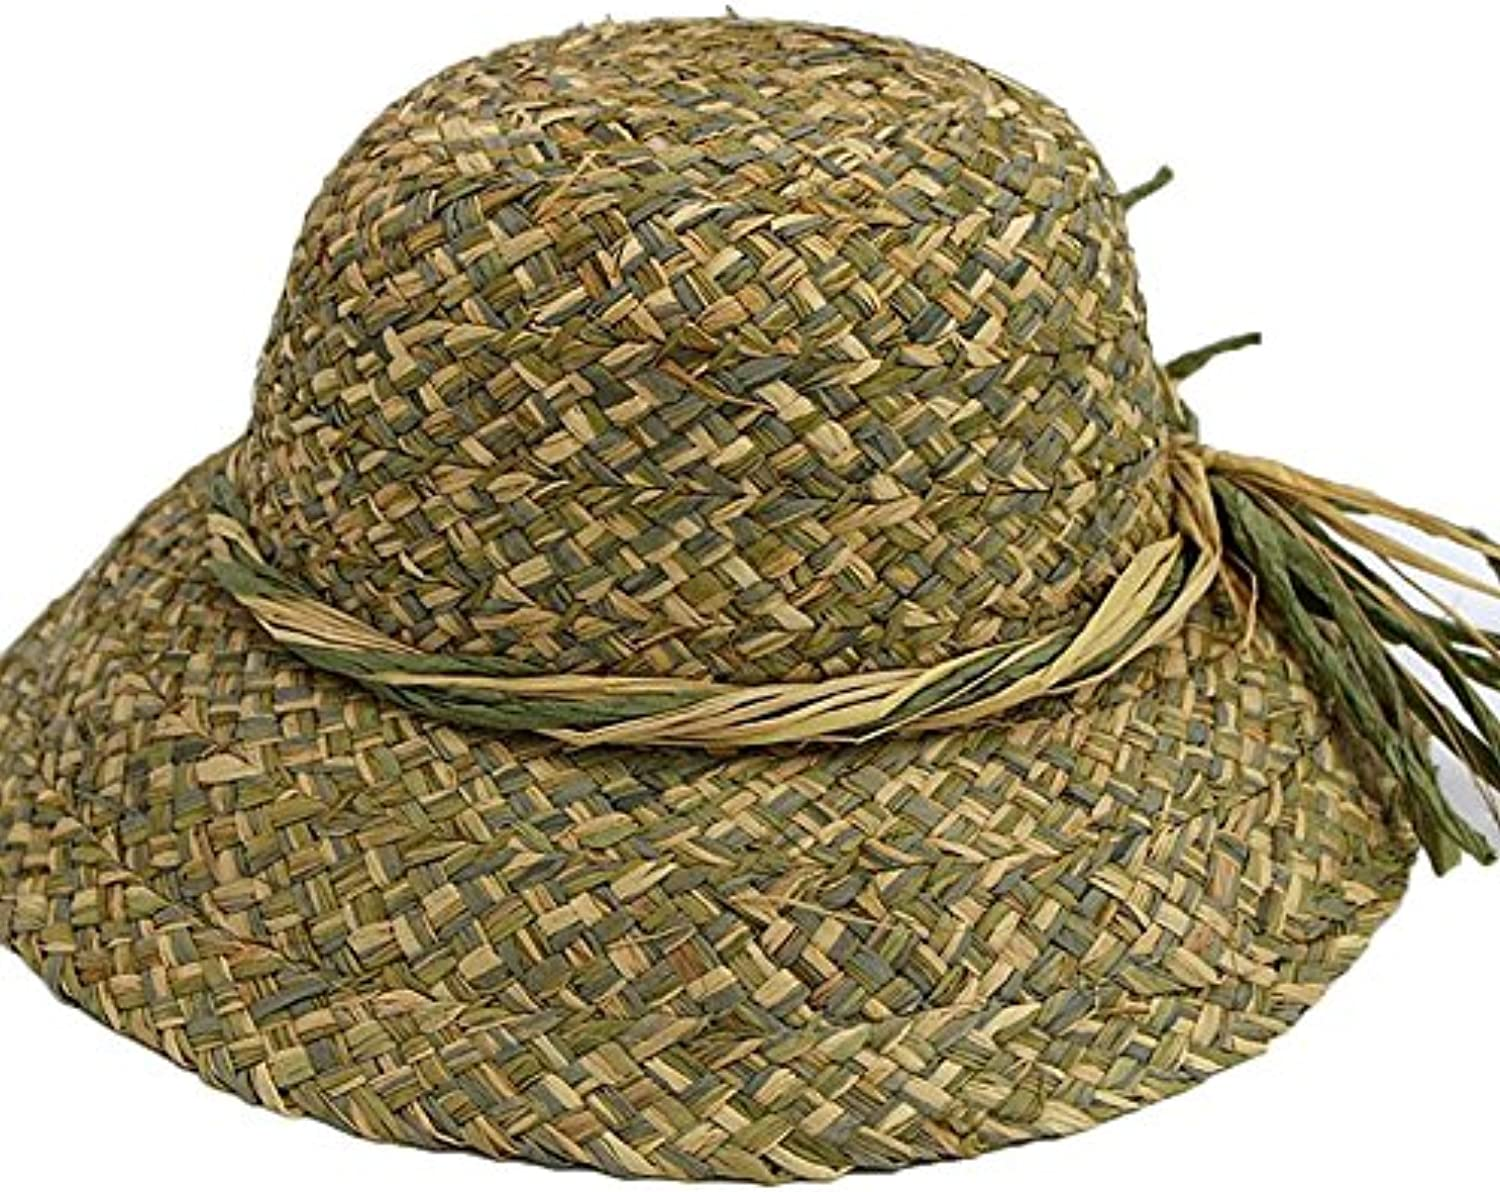 Hand-Woven Straw Hats are Suitable for Traveling in The Spring and Summer Season and Can Be Folded in The Sun